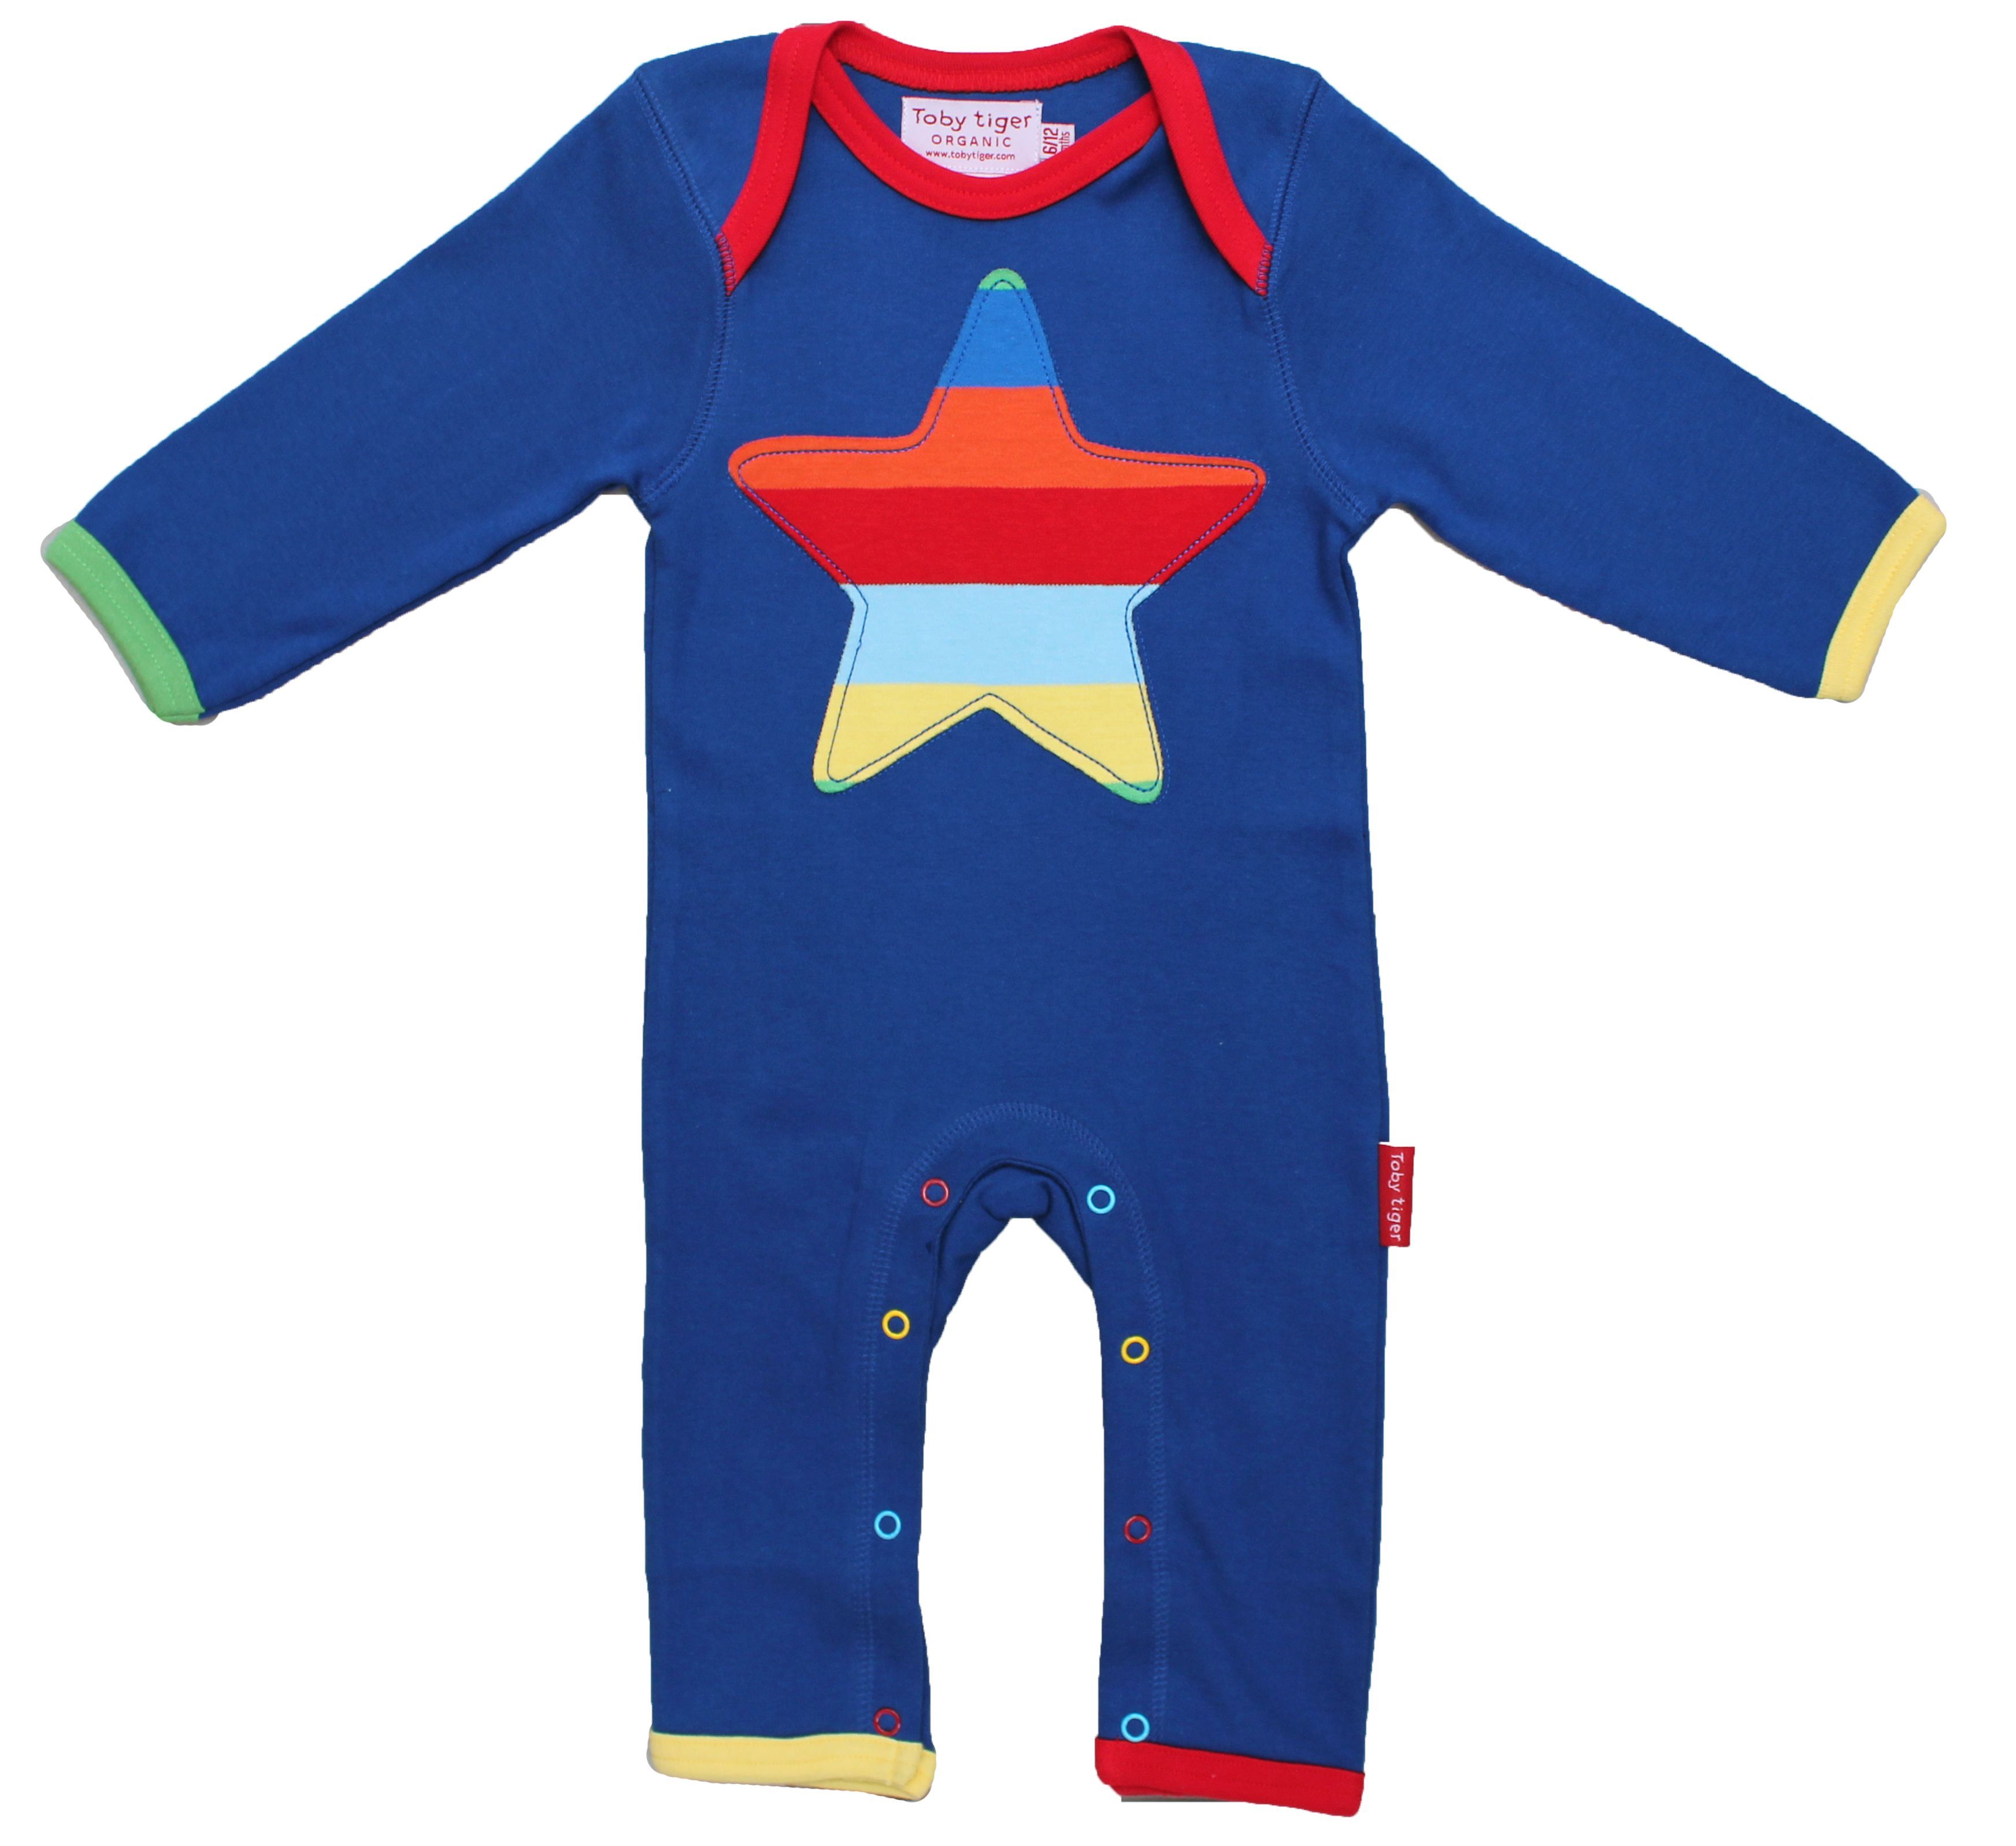 Kids organic cotton stripe star sleepsuit